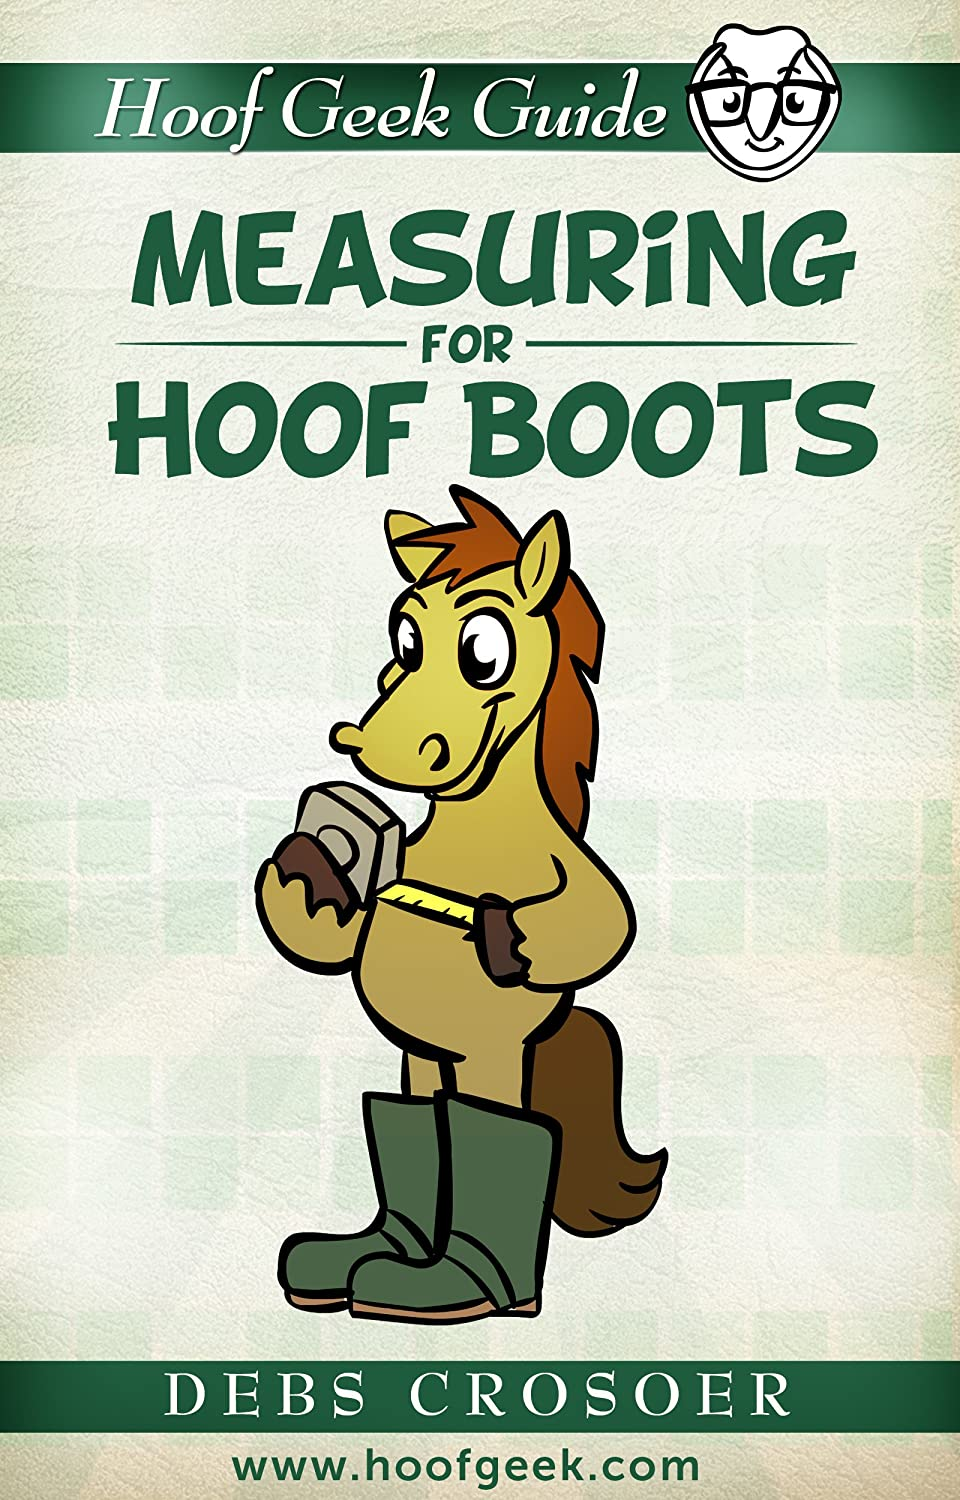 Hoof_Geek_Guide-cover